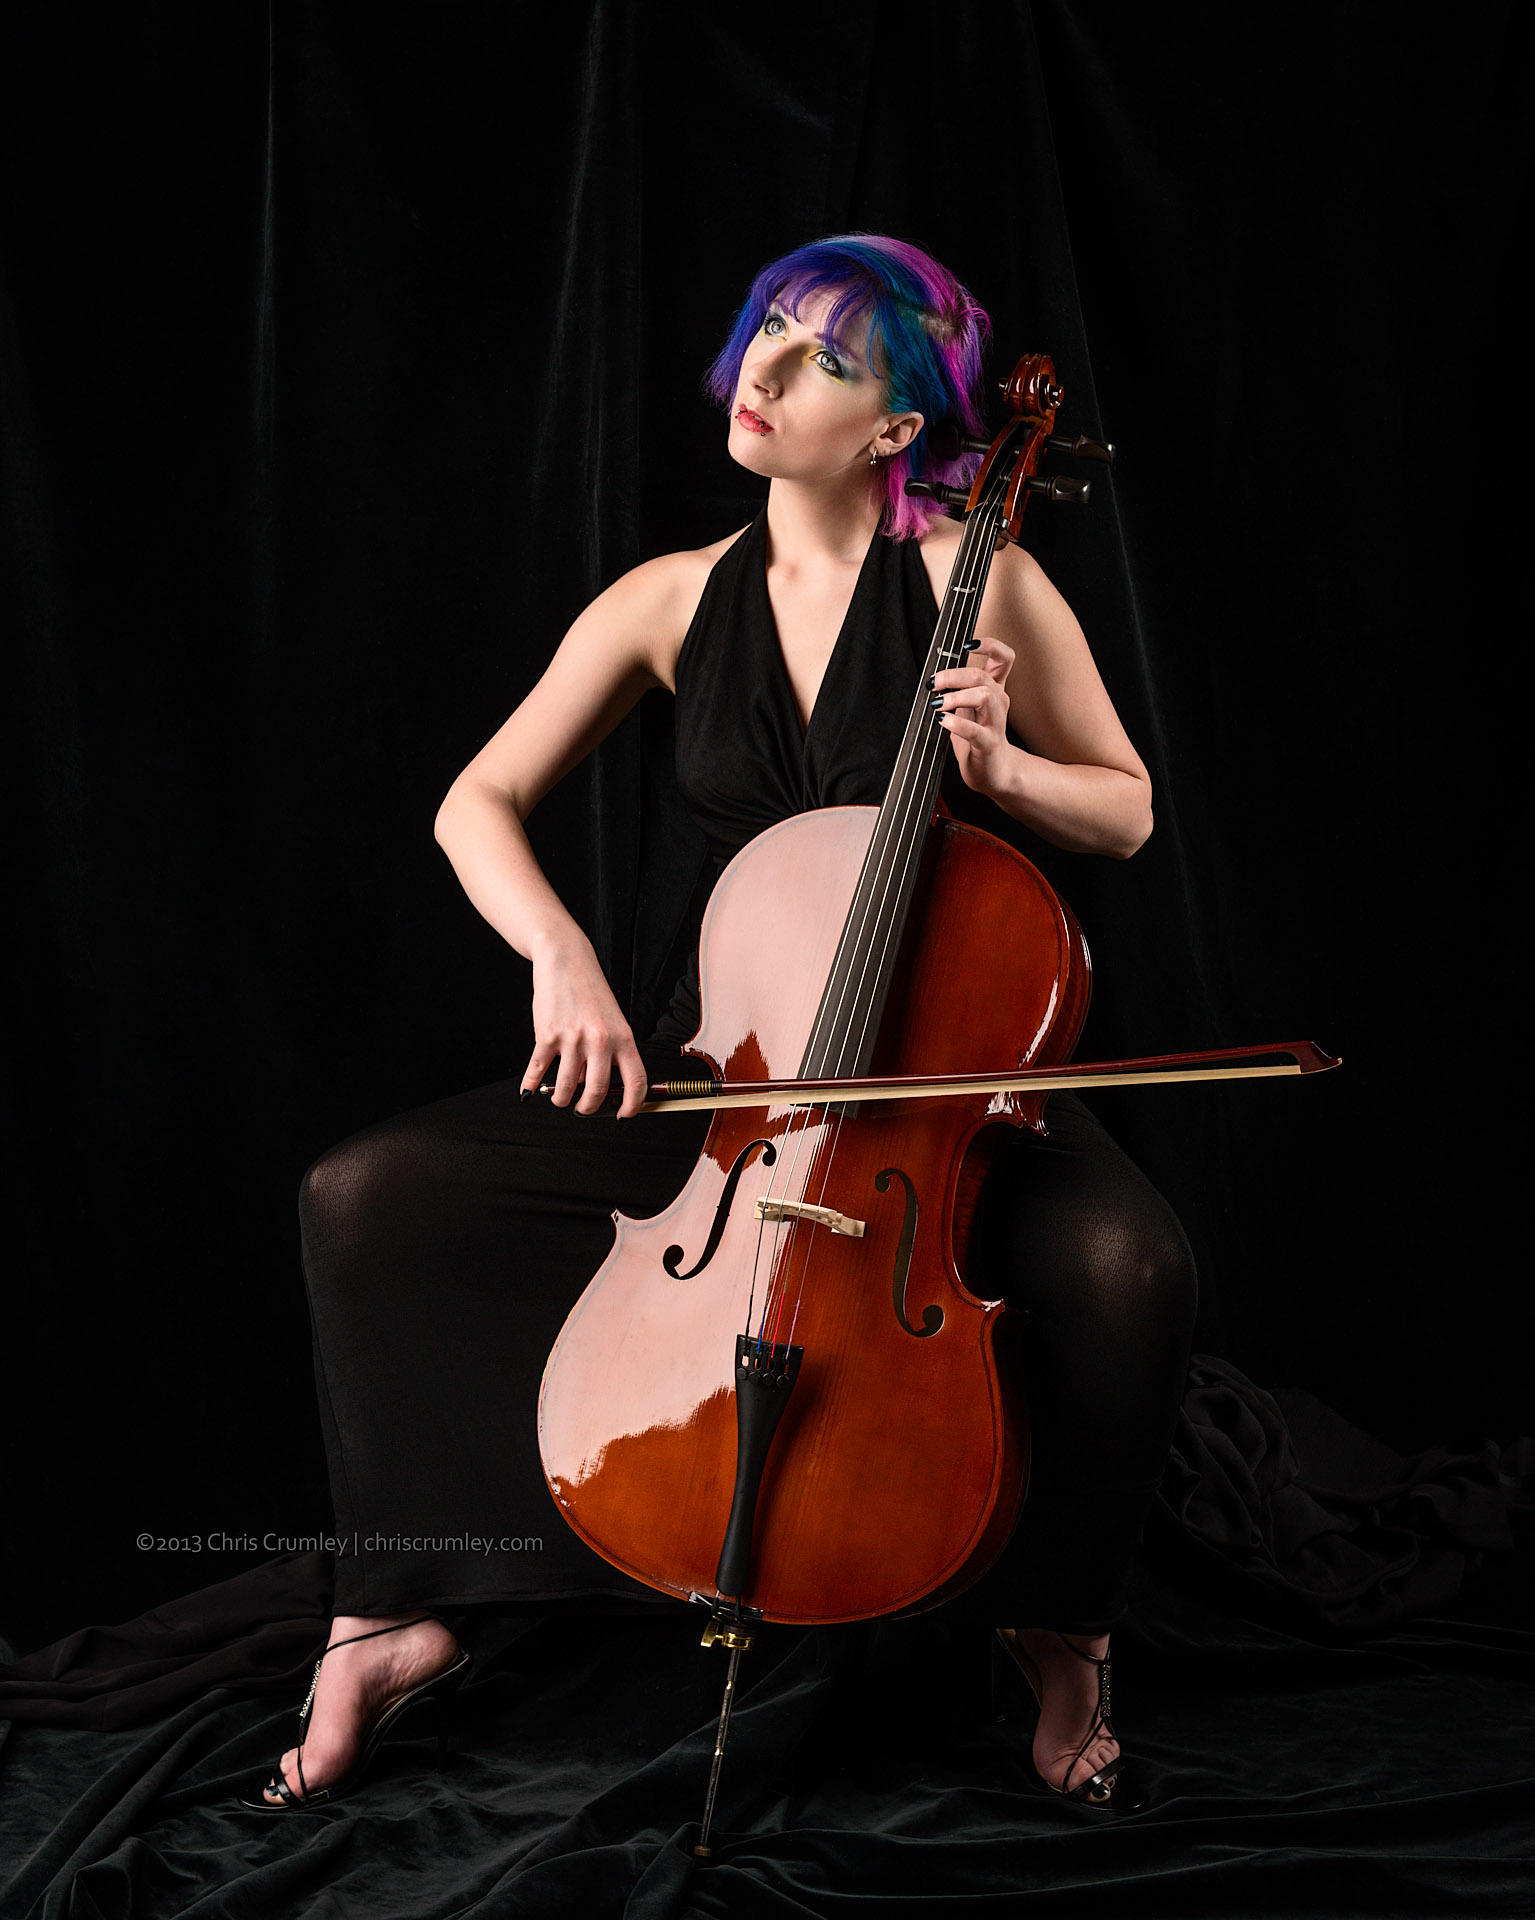 Brynna Raine playing the Cello